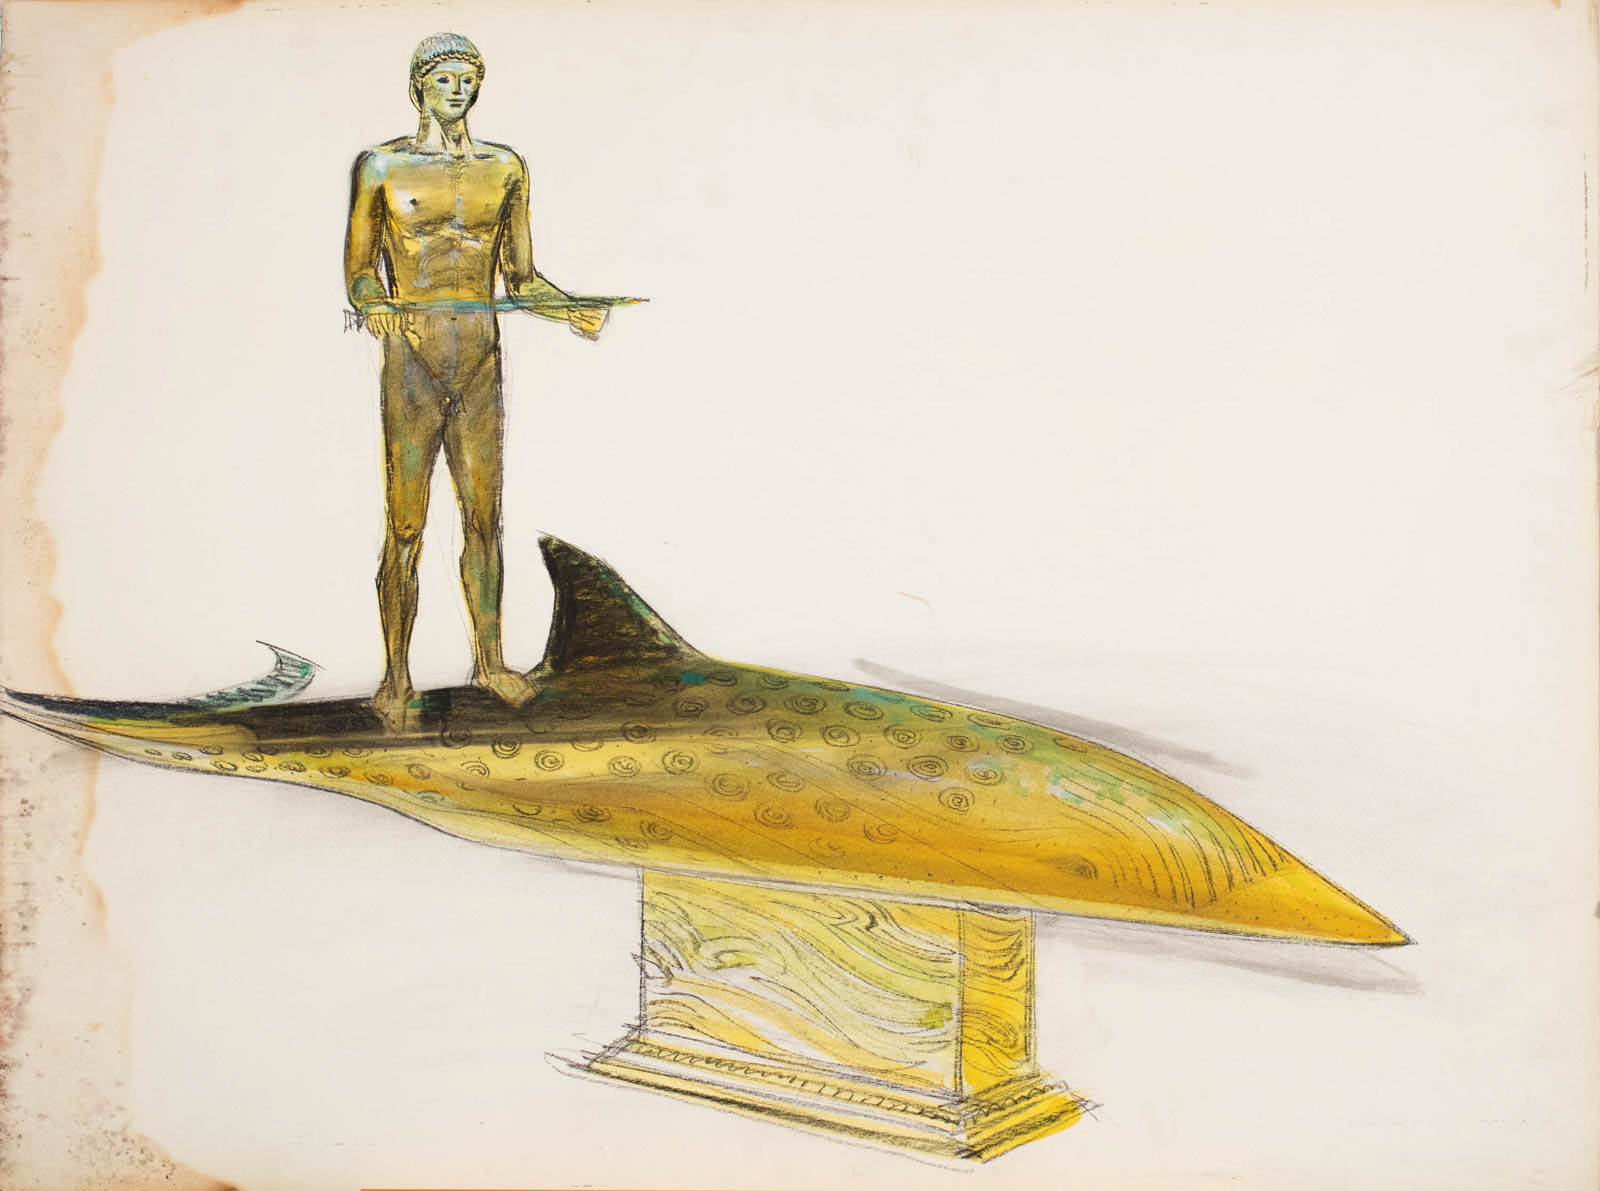 Boy_on_A_Dolphin_John_Decuir_Sr_Asbury_Production_Design